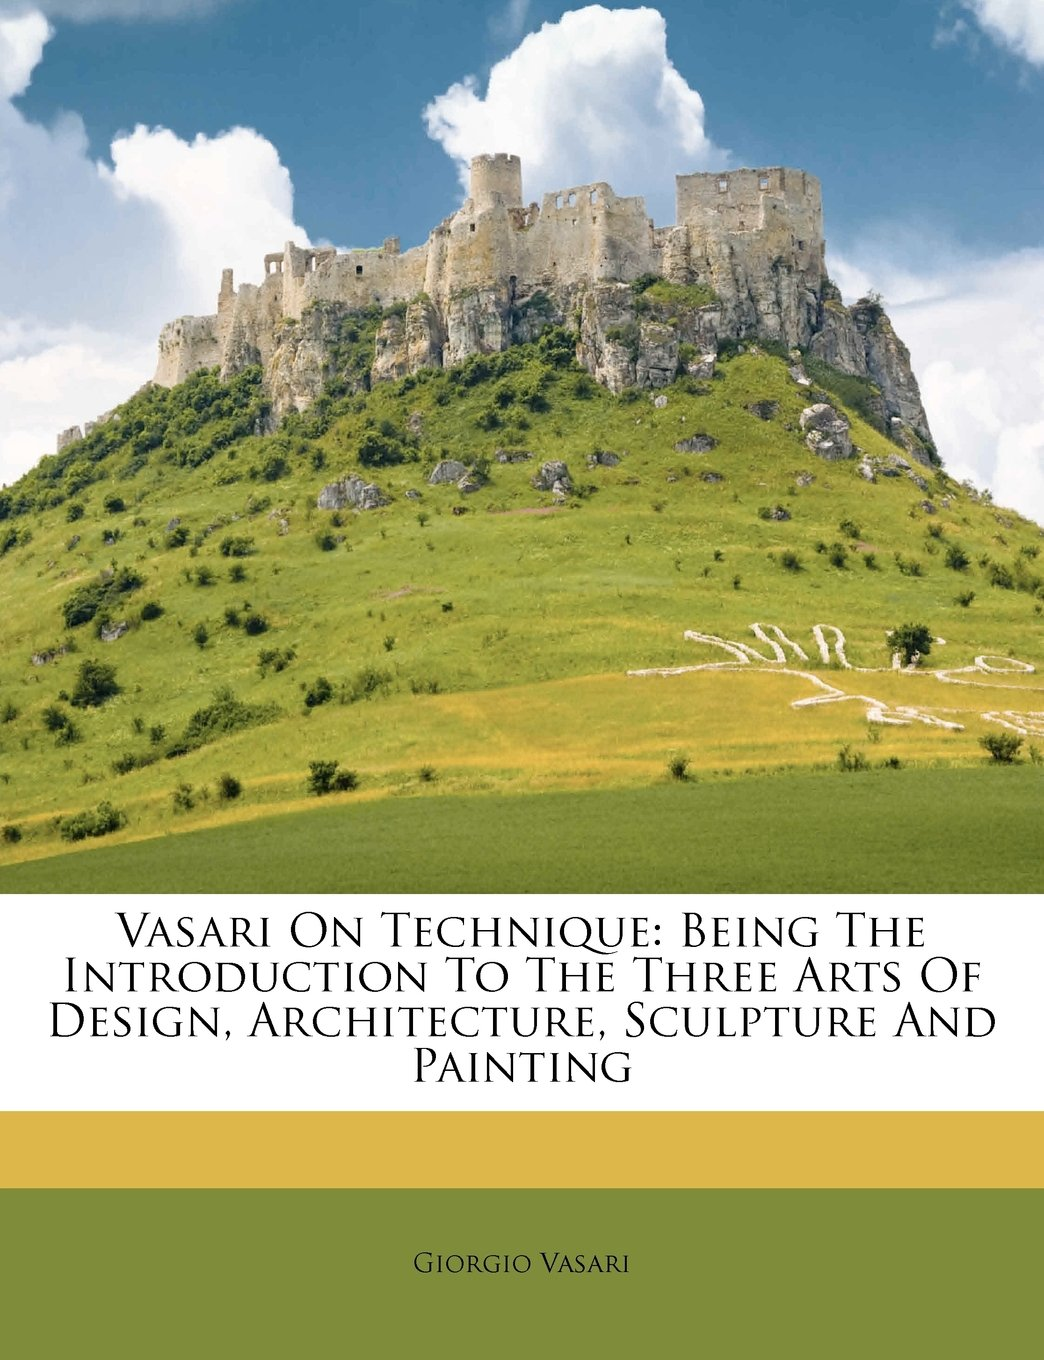 Vasari On Technique: Being The Introduction To The Three Arts Of Design, Architecture, Sculpture And Painting pdf